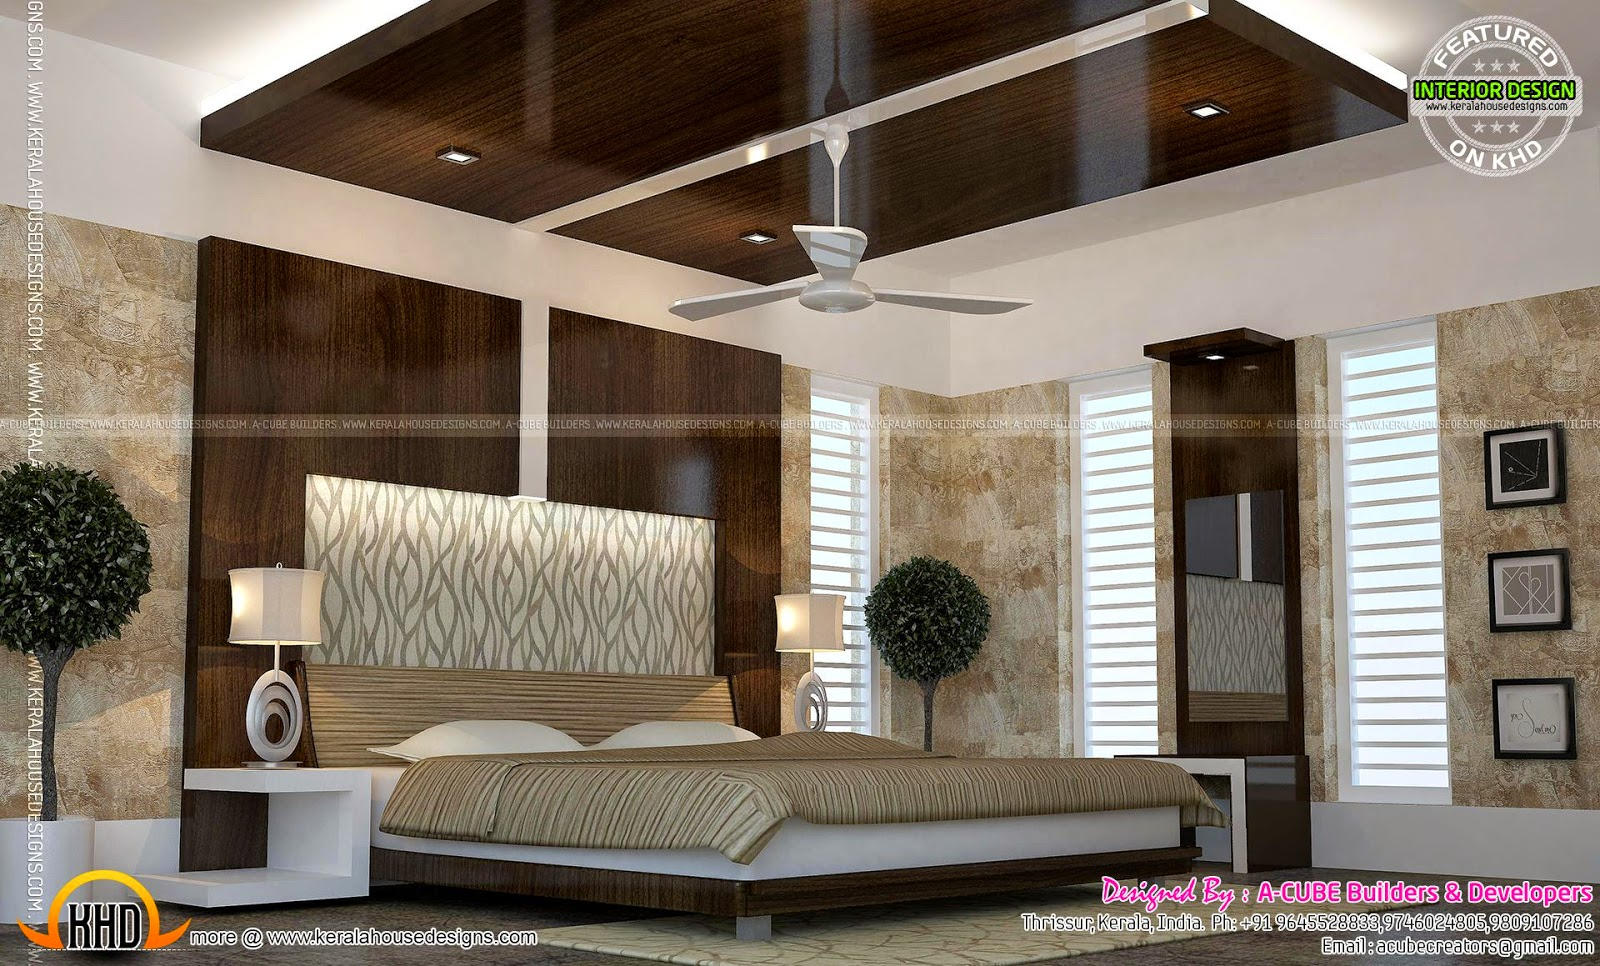 Kerala interior design ideas kerala home design and for Interior design ideas images